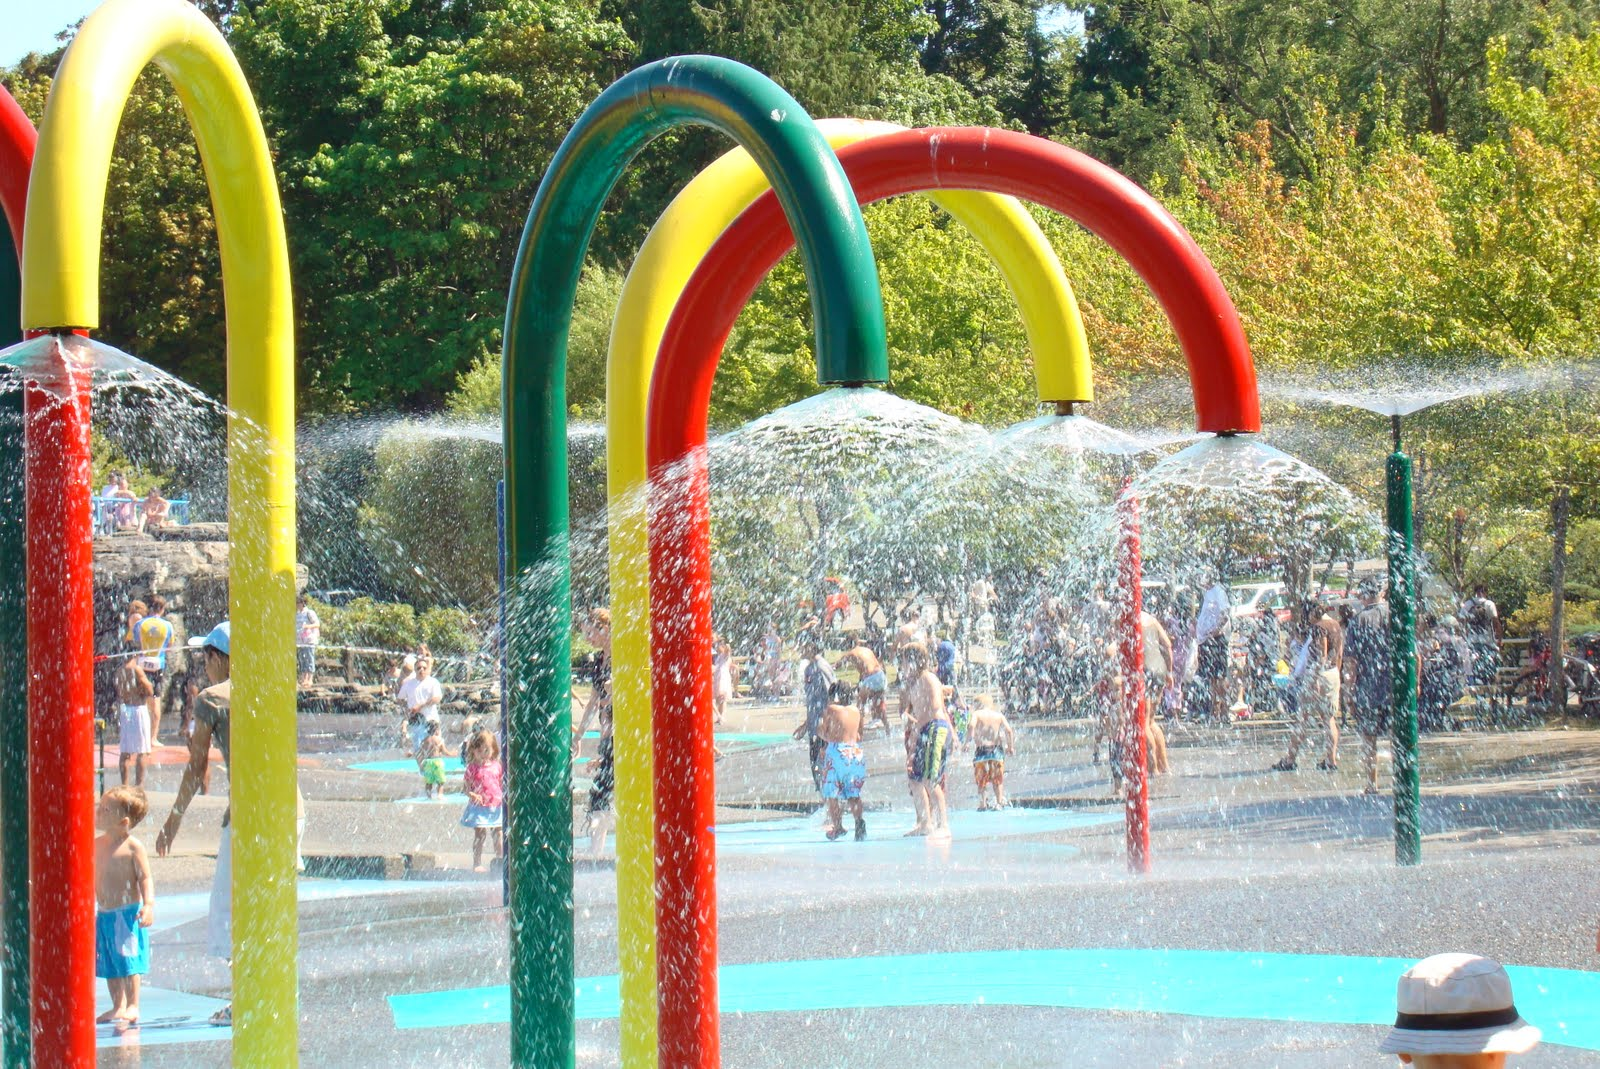 Carnegie Centre Vancouver, Traveling With Kids: 5 fun water parks in & around Vancouver